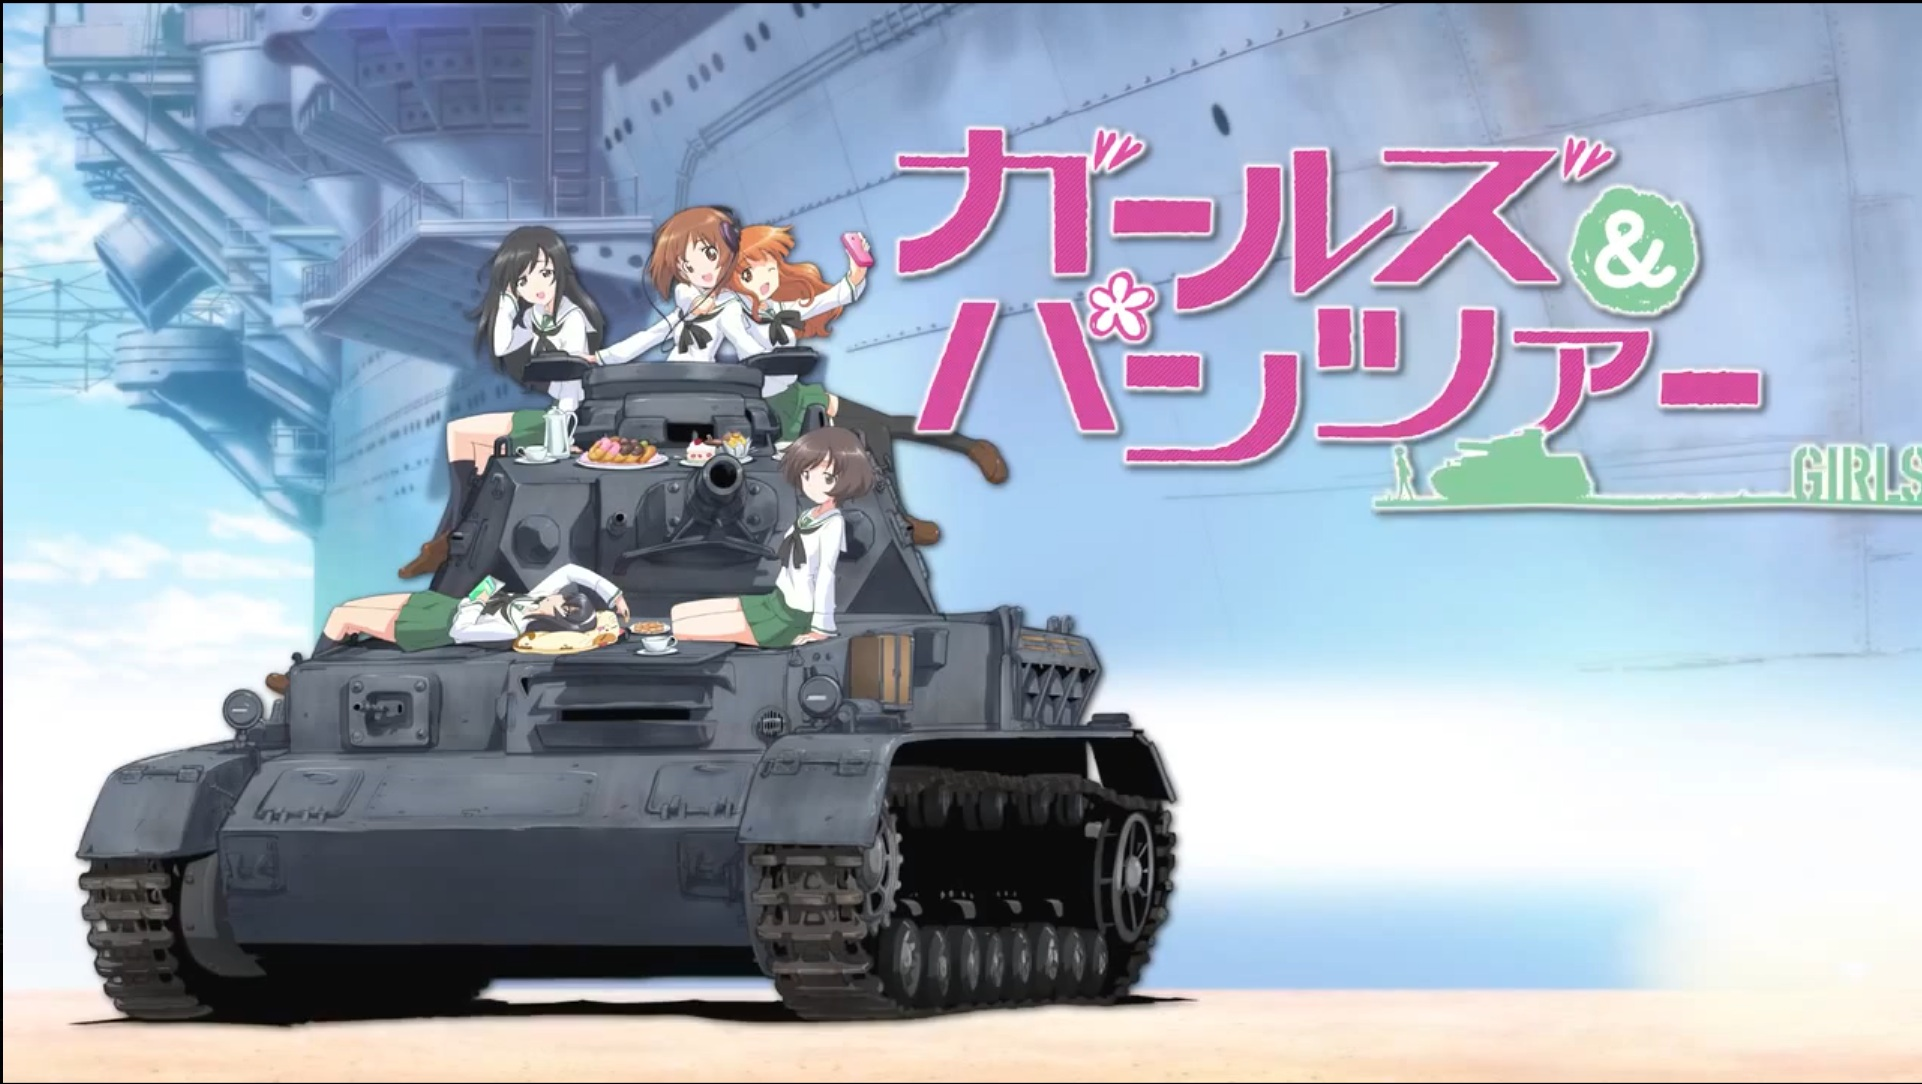 Girls Und Panzer Backgrounds, Compatible - PC, Mobile, Gadgets| 1922x1084 px